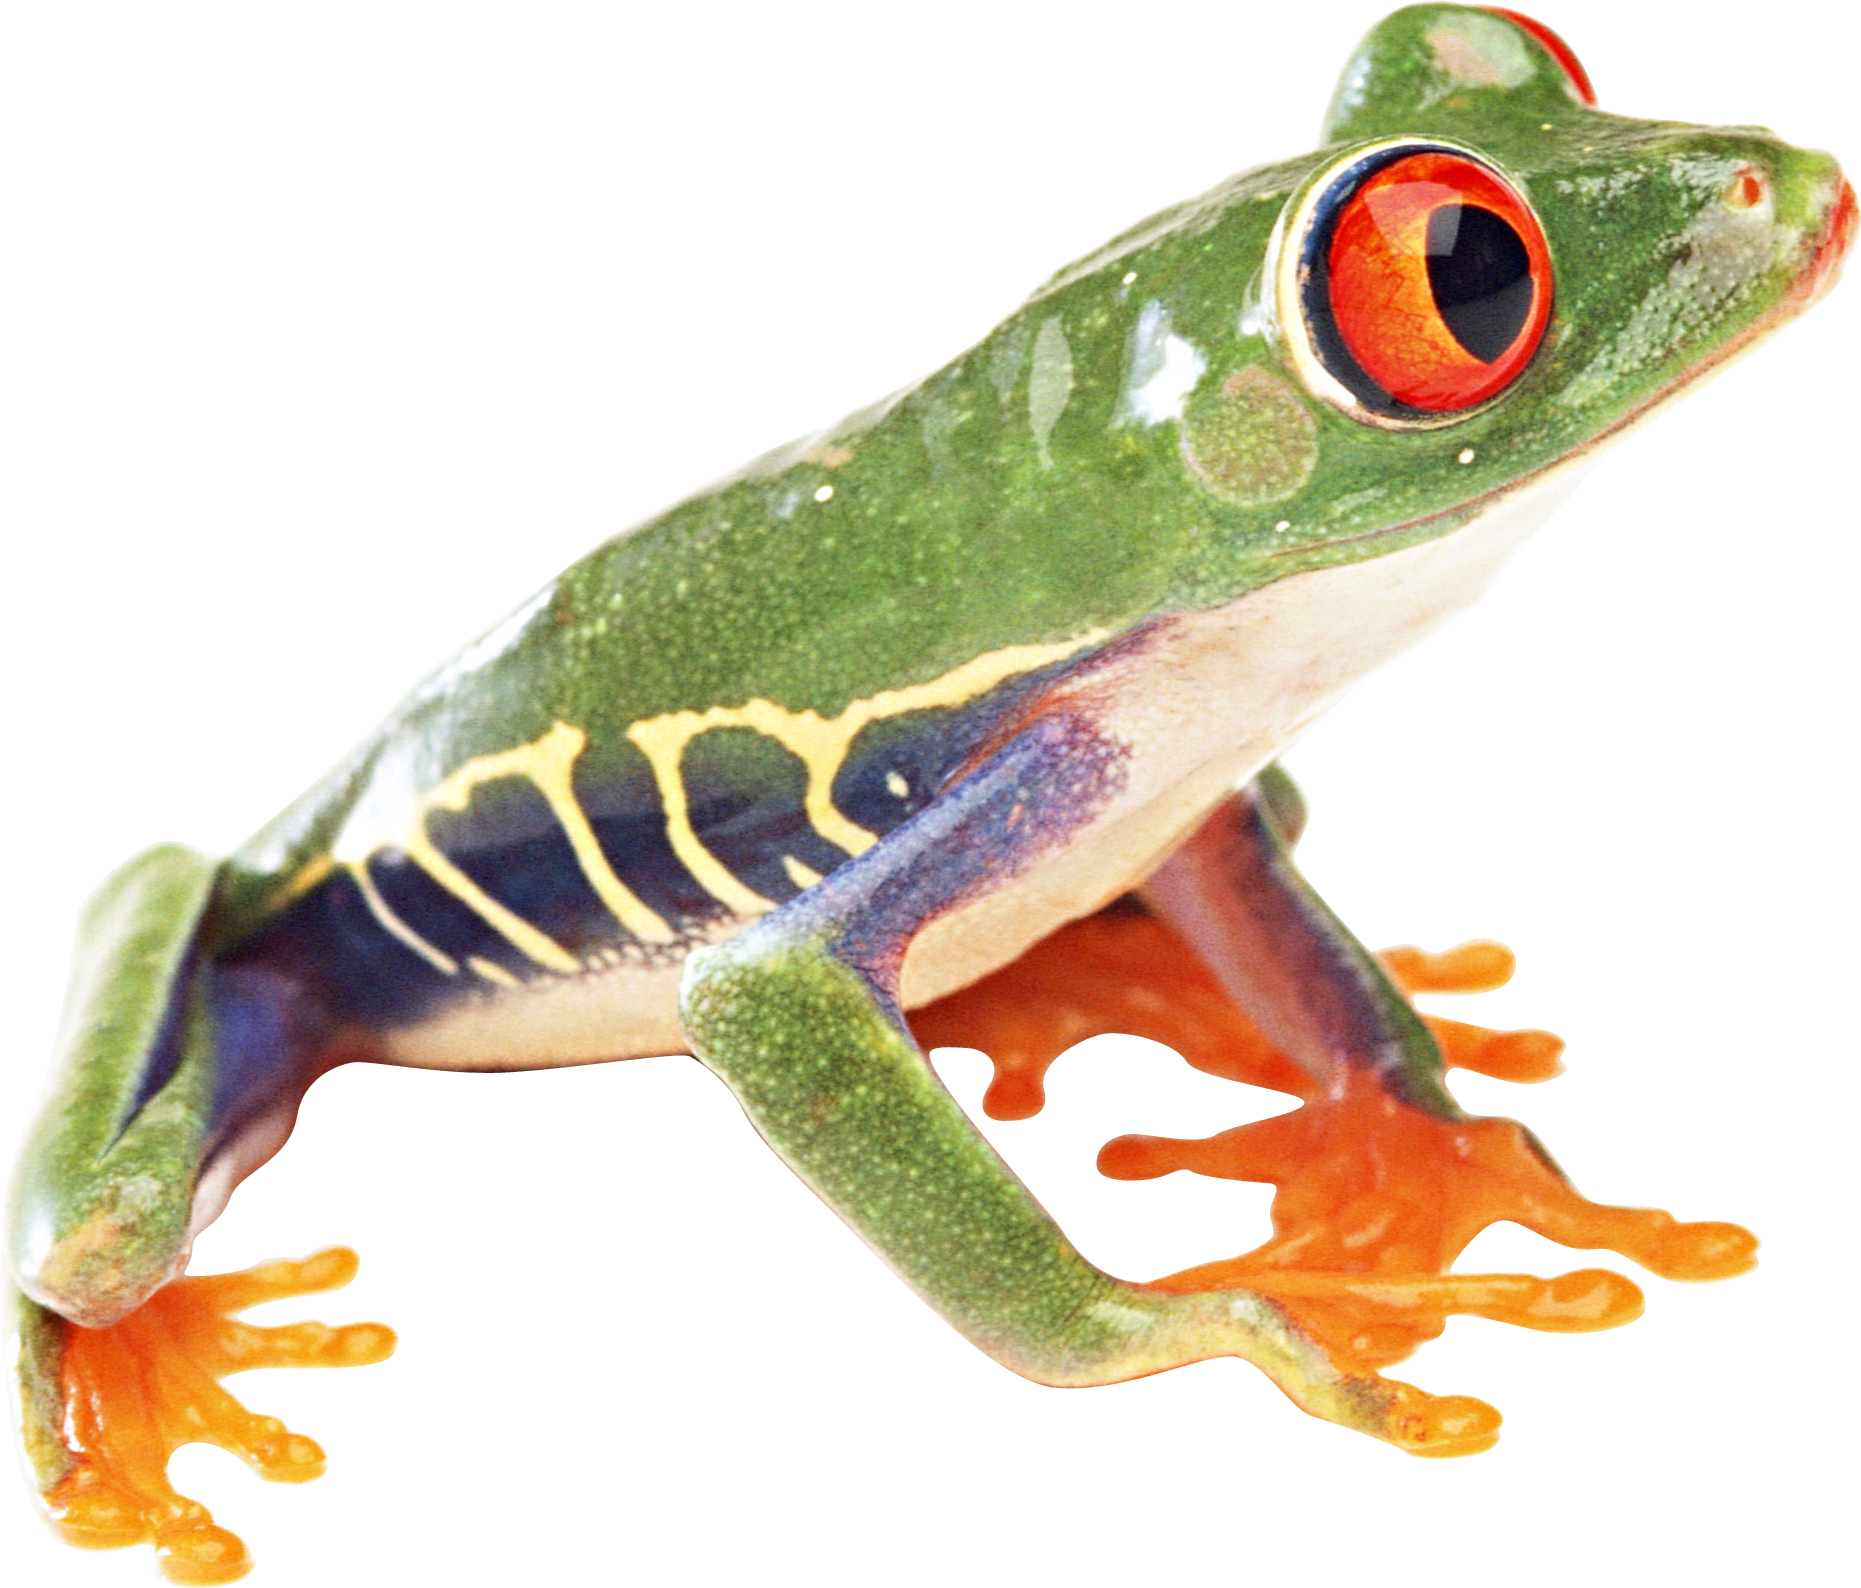 Tree frog png. Image red eyed frogs